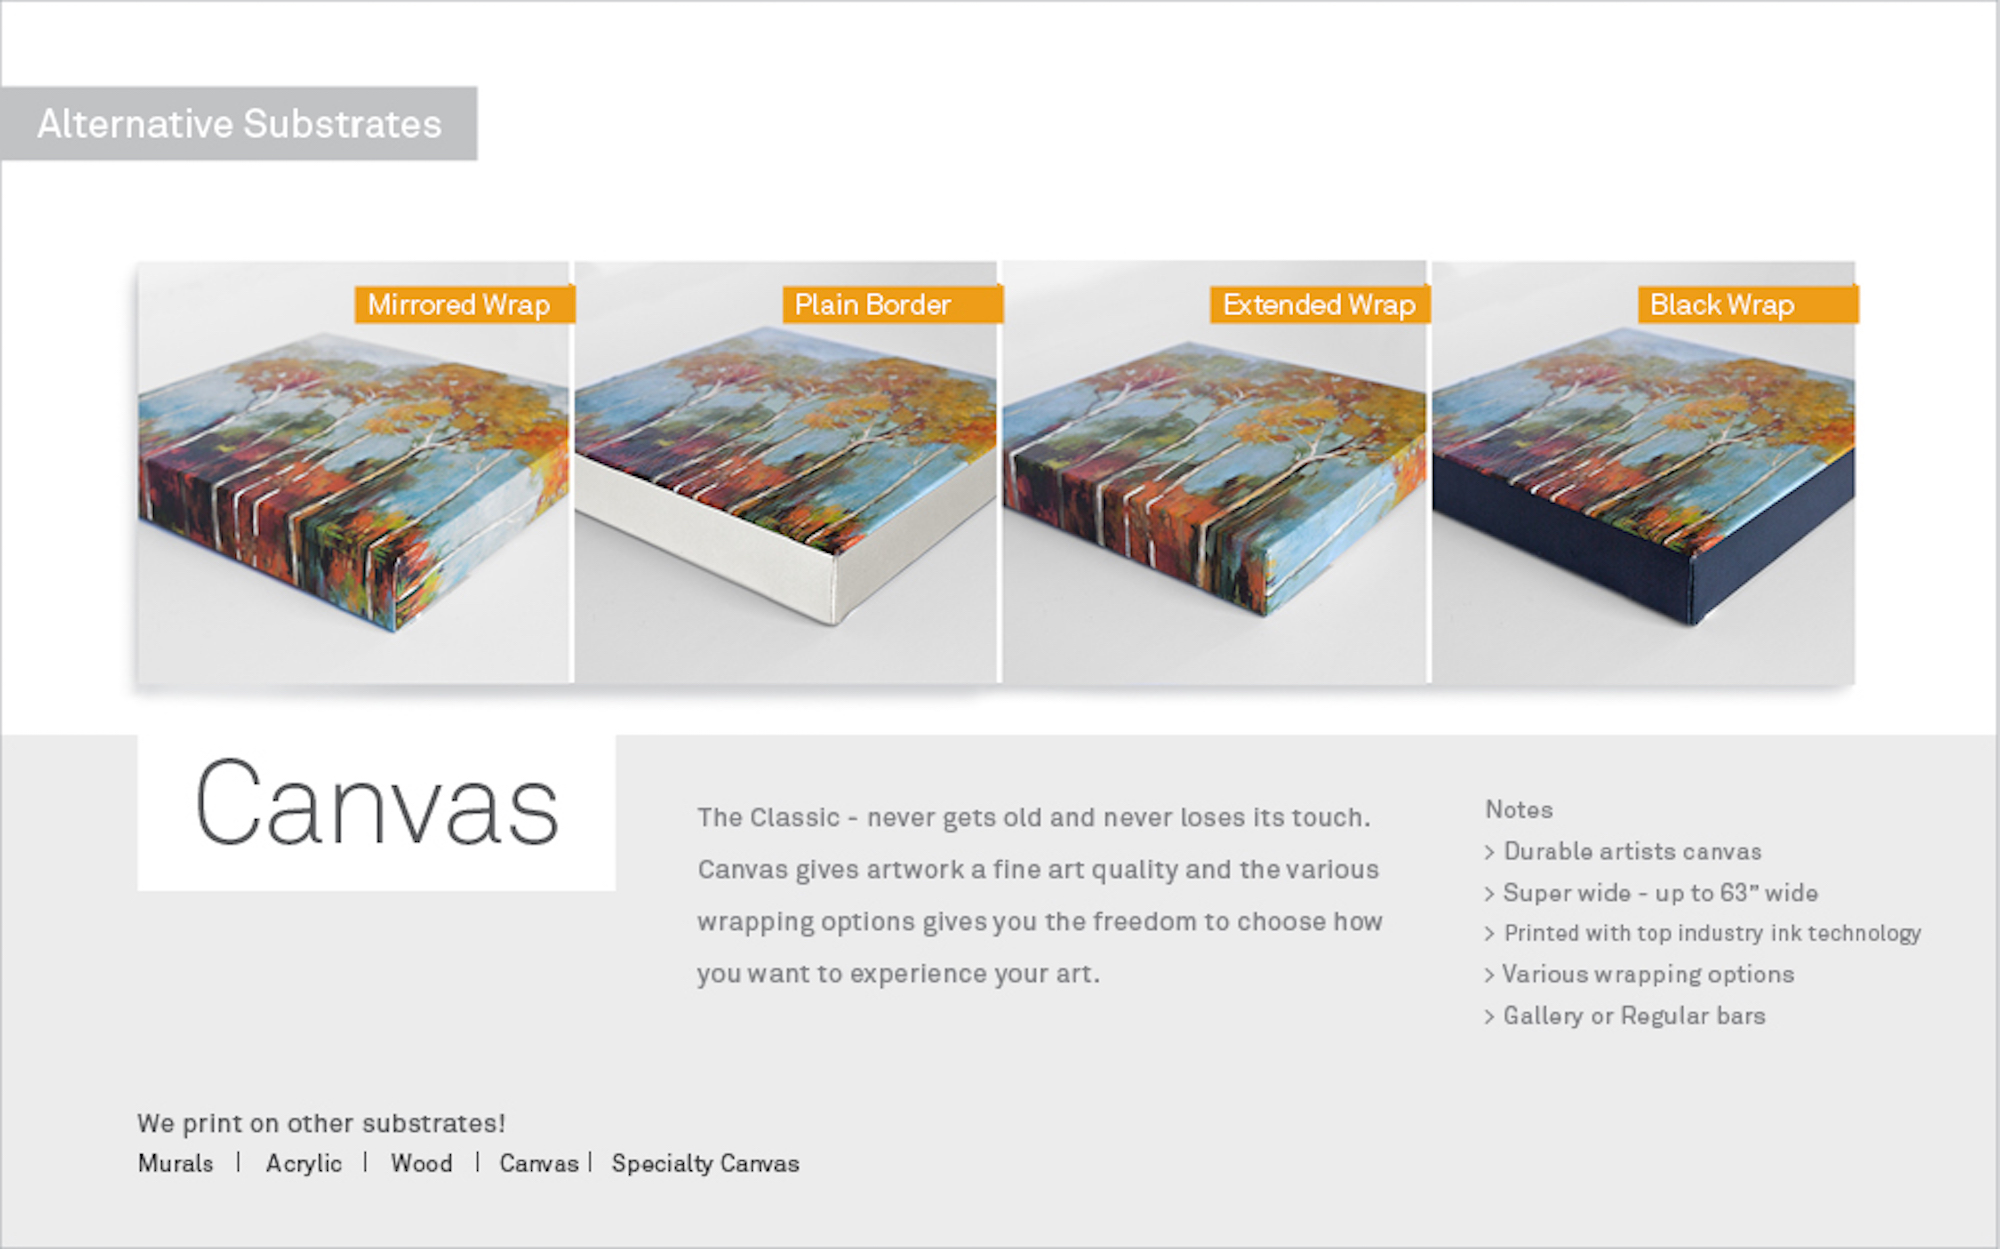 WebsiteSubstratesv6_Canvas